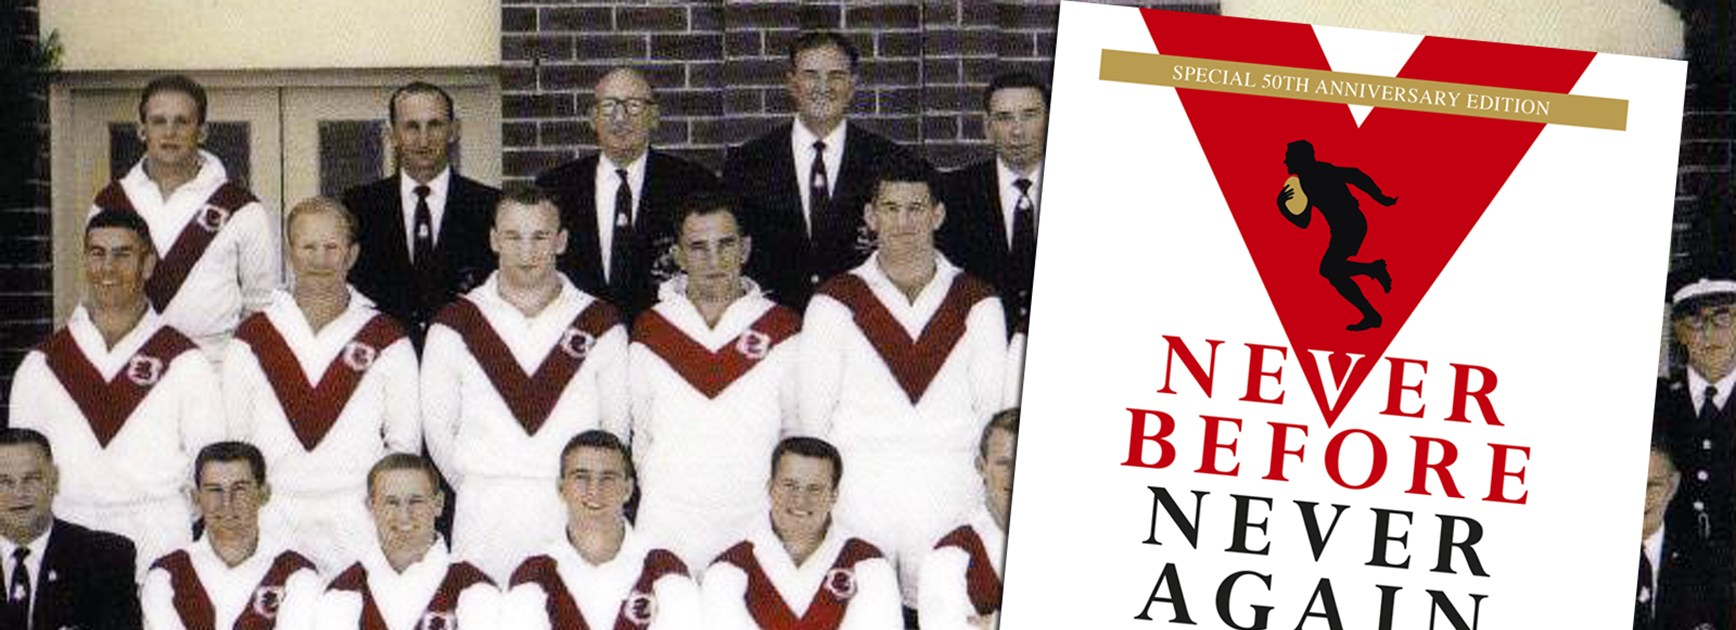 'Never before, never again' chronicles the 11 successive premierships won by the St George Dragons from 1956-66.